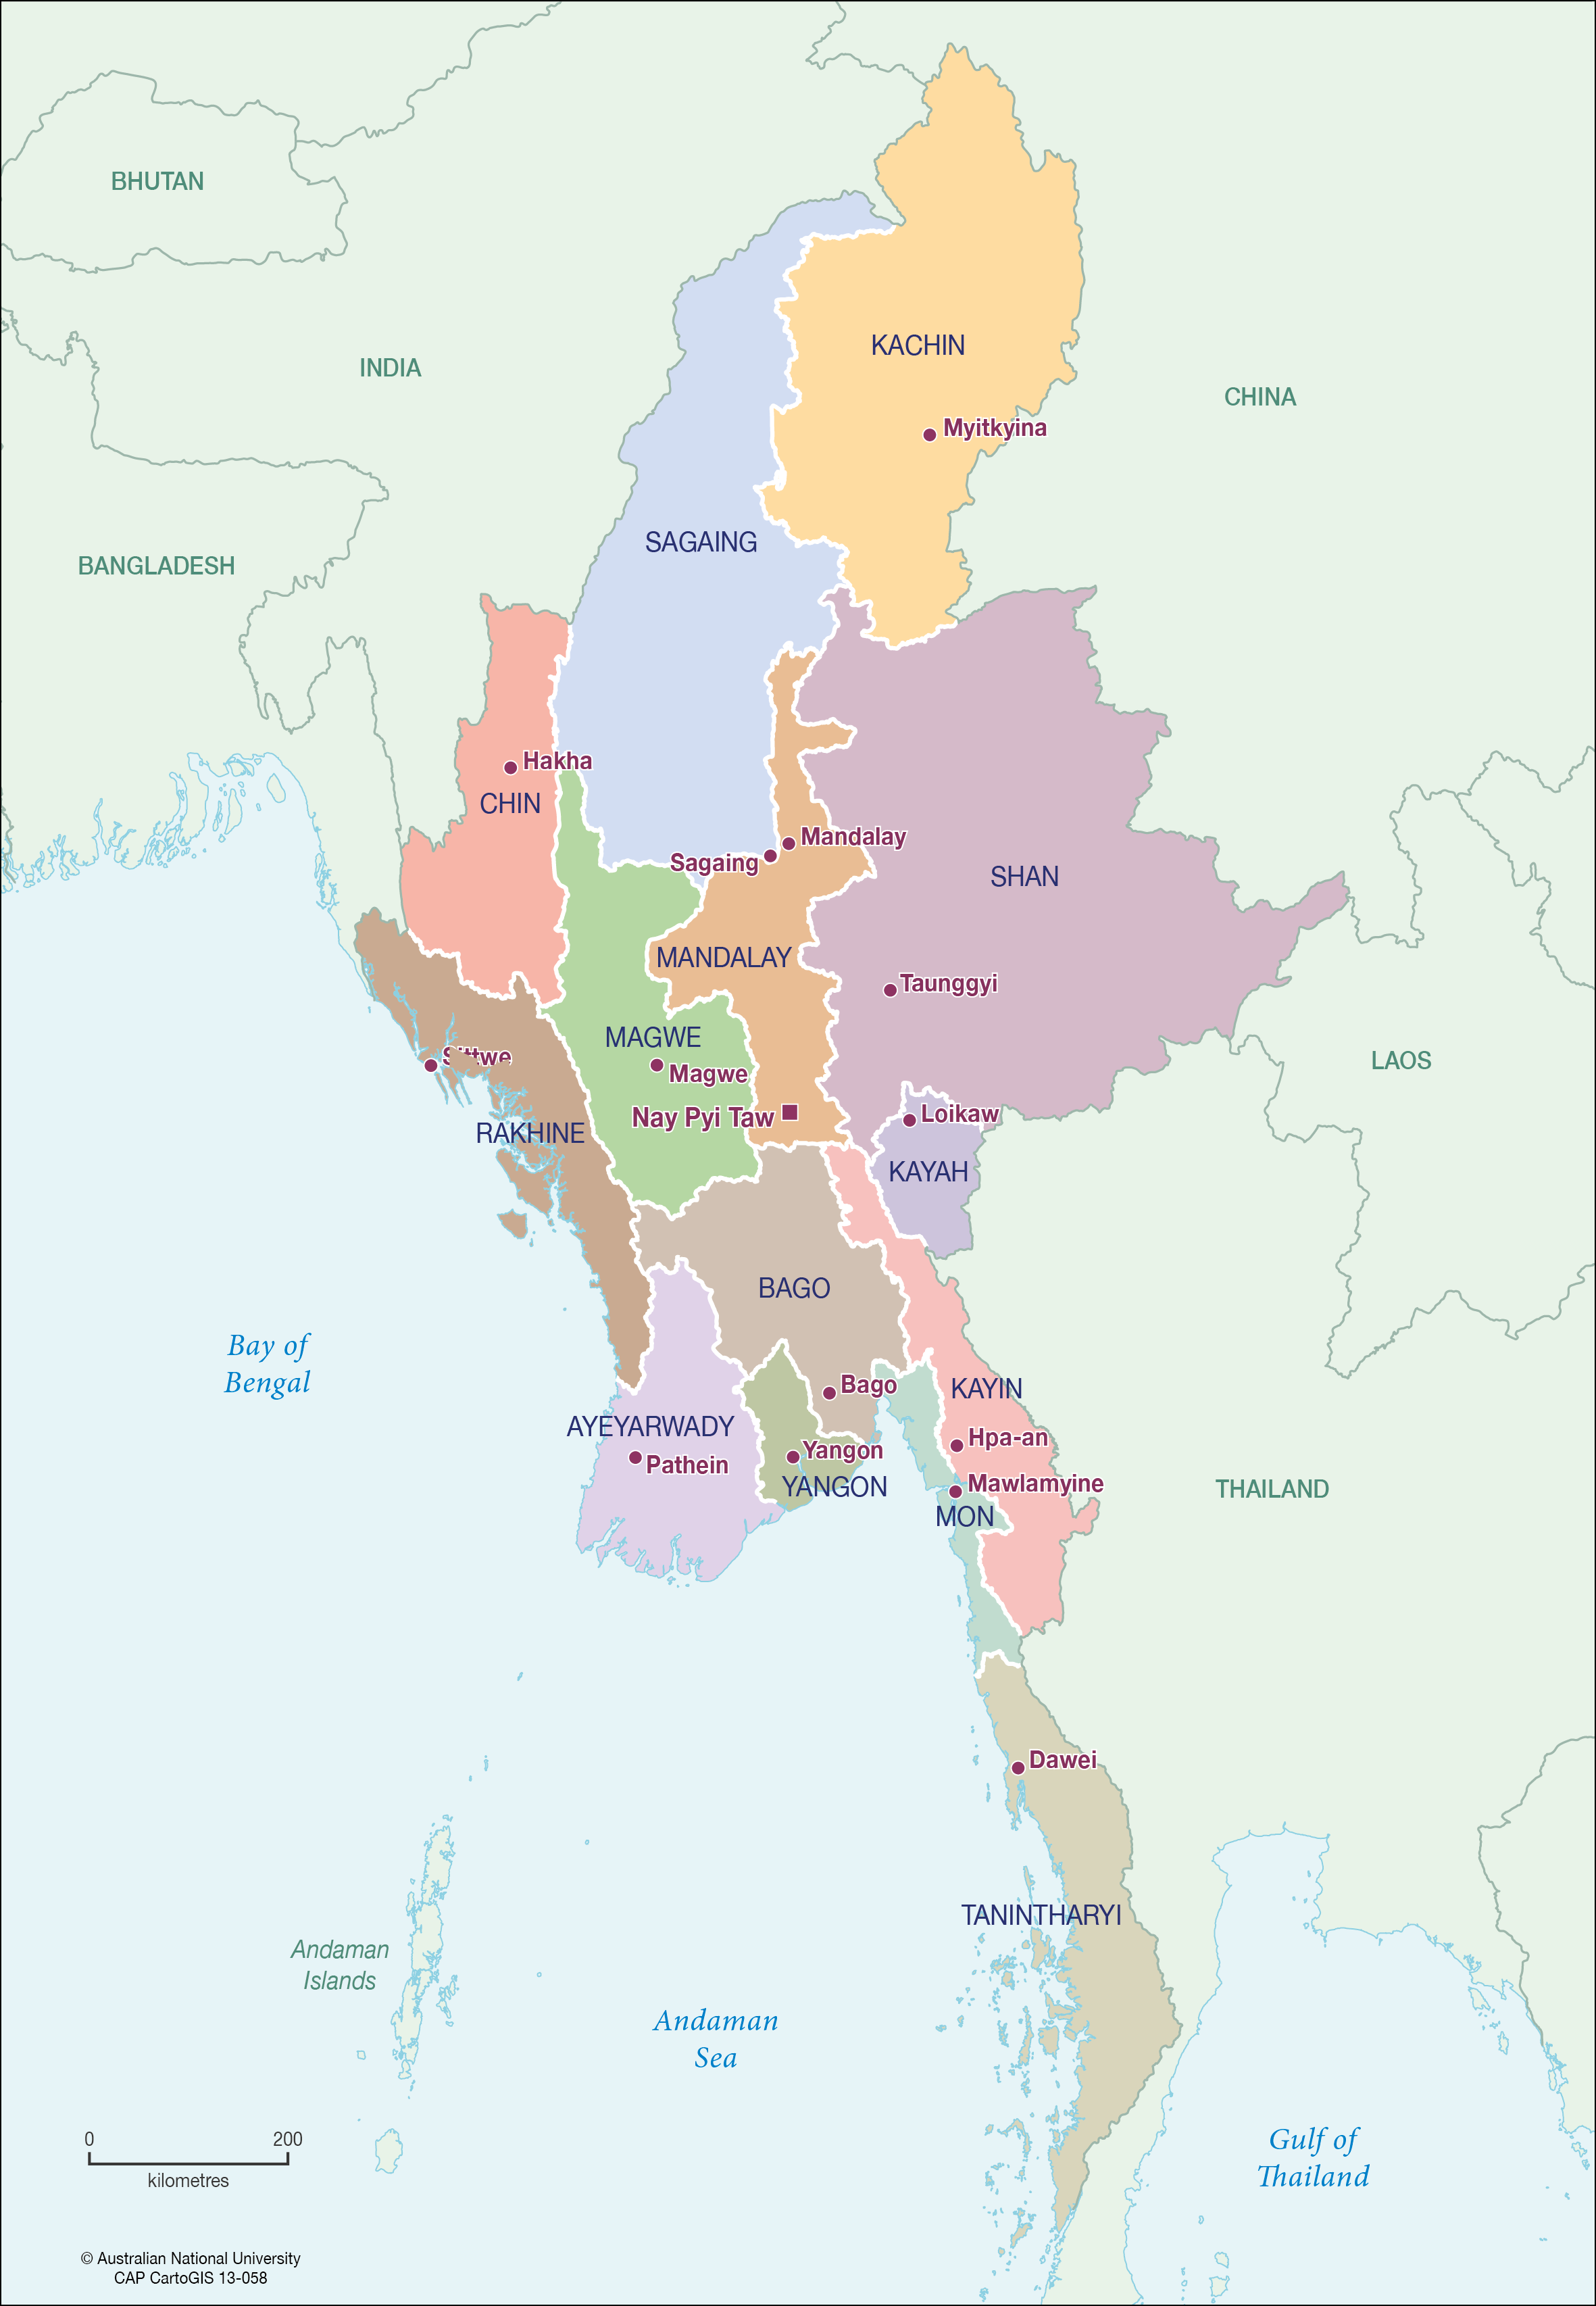 Myanmar Statesregions CartoGIS Services Maps Online ANU - Burma map download